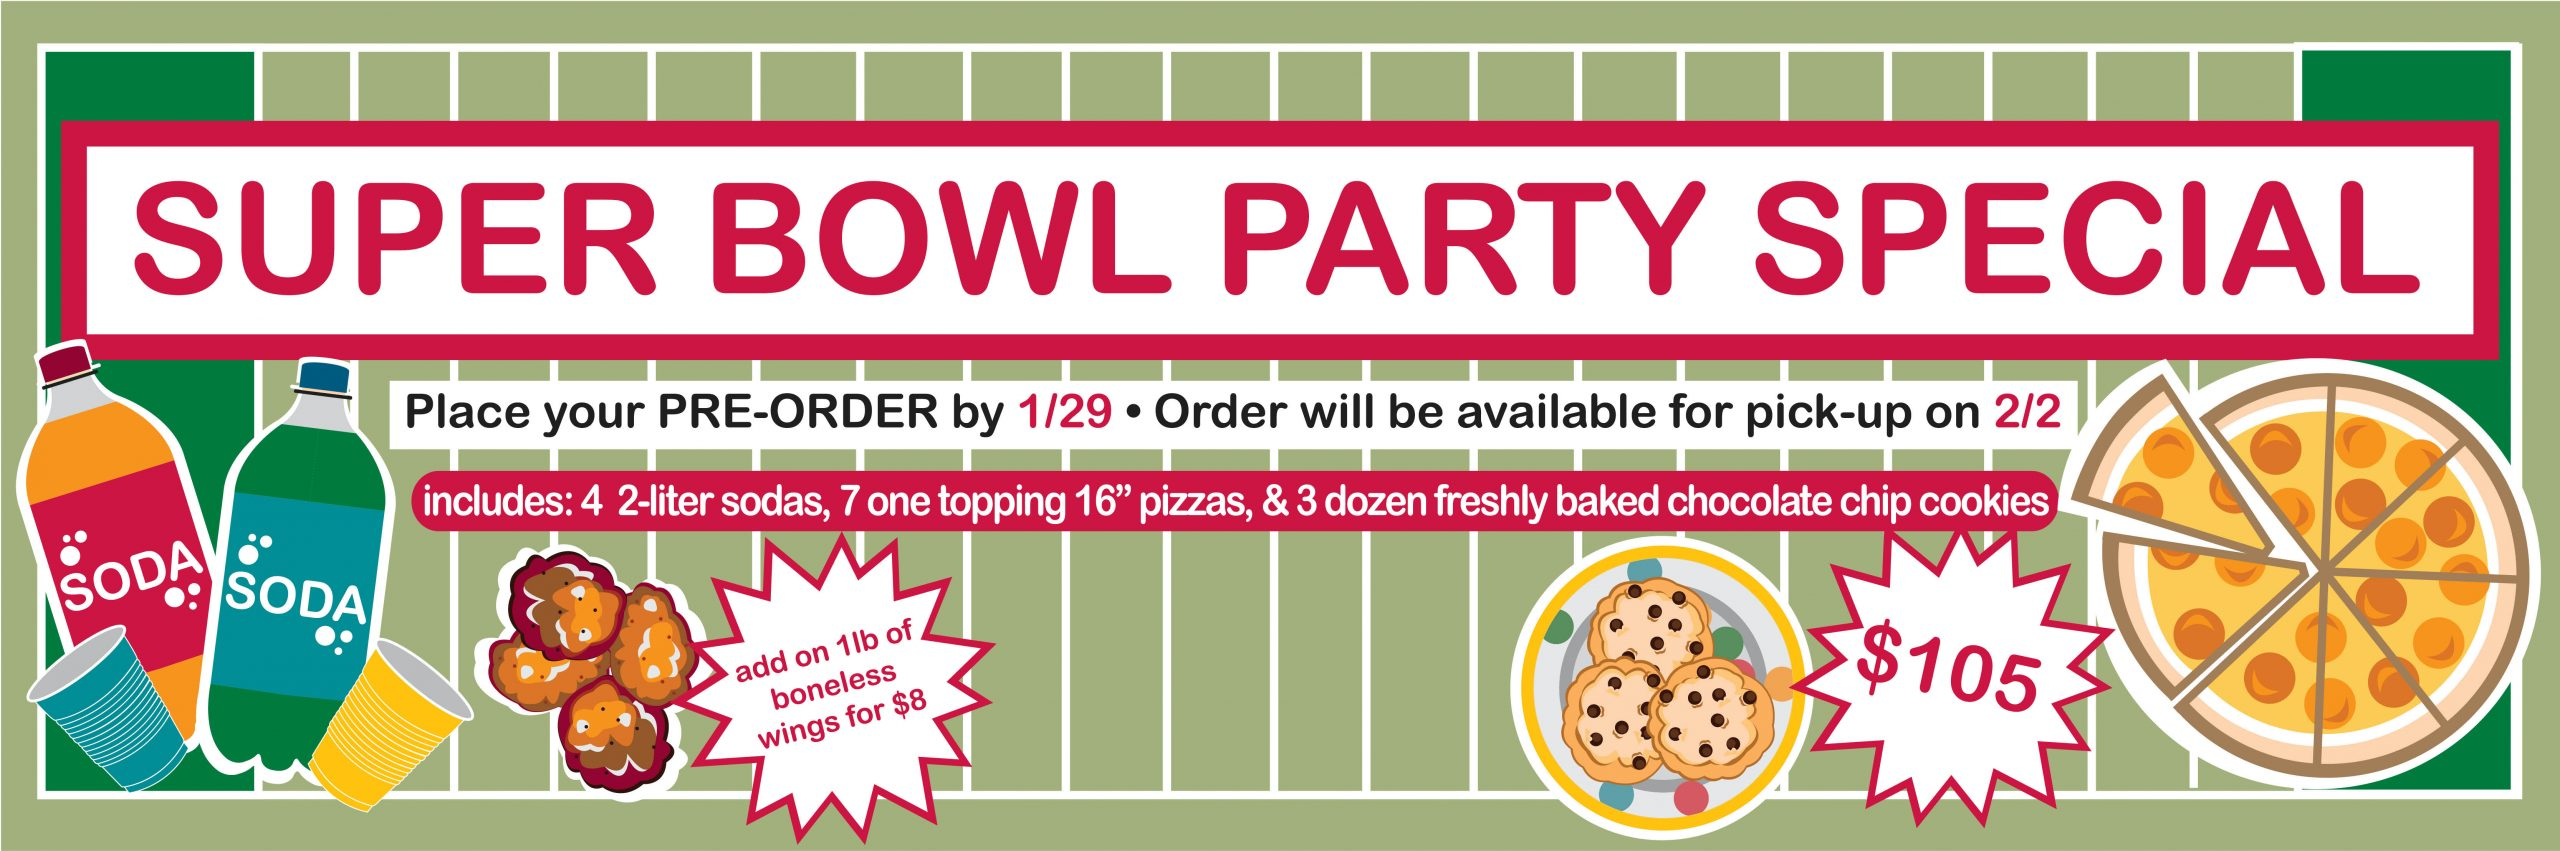 Super bowl Party Special. Place Your PRE-ORDER by 1/29. Order will be available for pick-up on 2/2. Includes 4 2-liter sodas, 7 one topping 16'' pizzas, & 3 dozen freshly baked chocolate chip cookies. $105. Add on 1lb of boneless wings for $8.